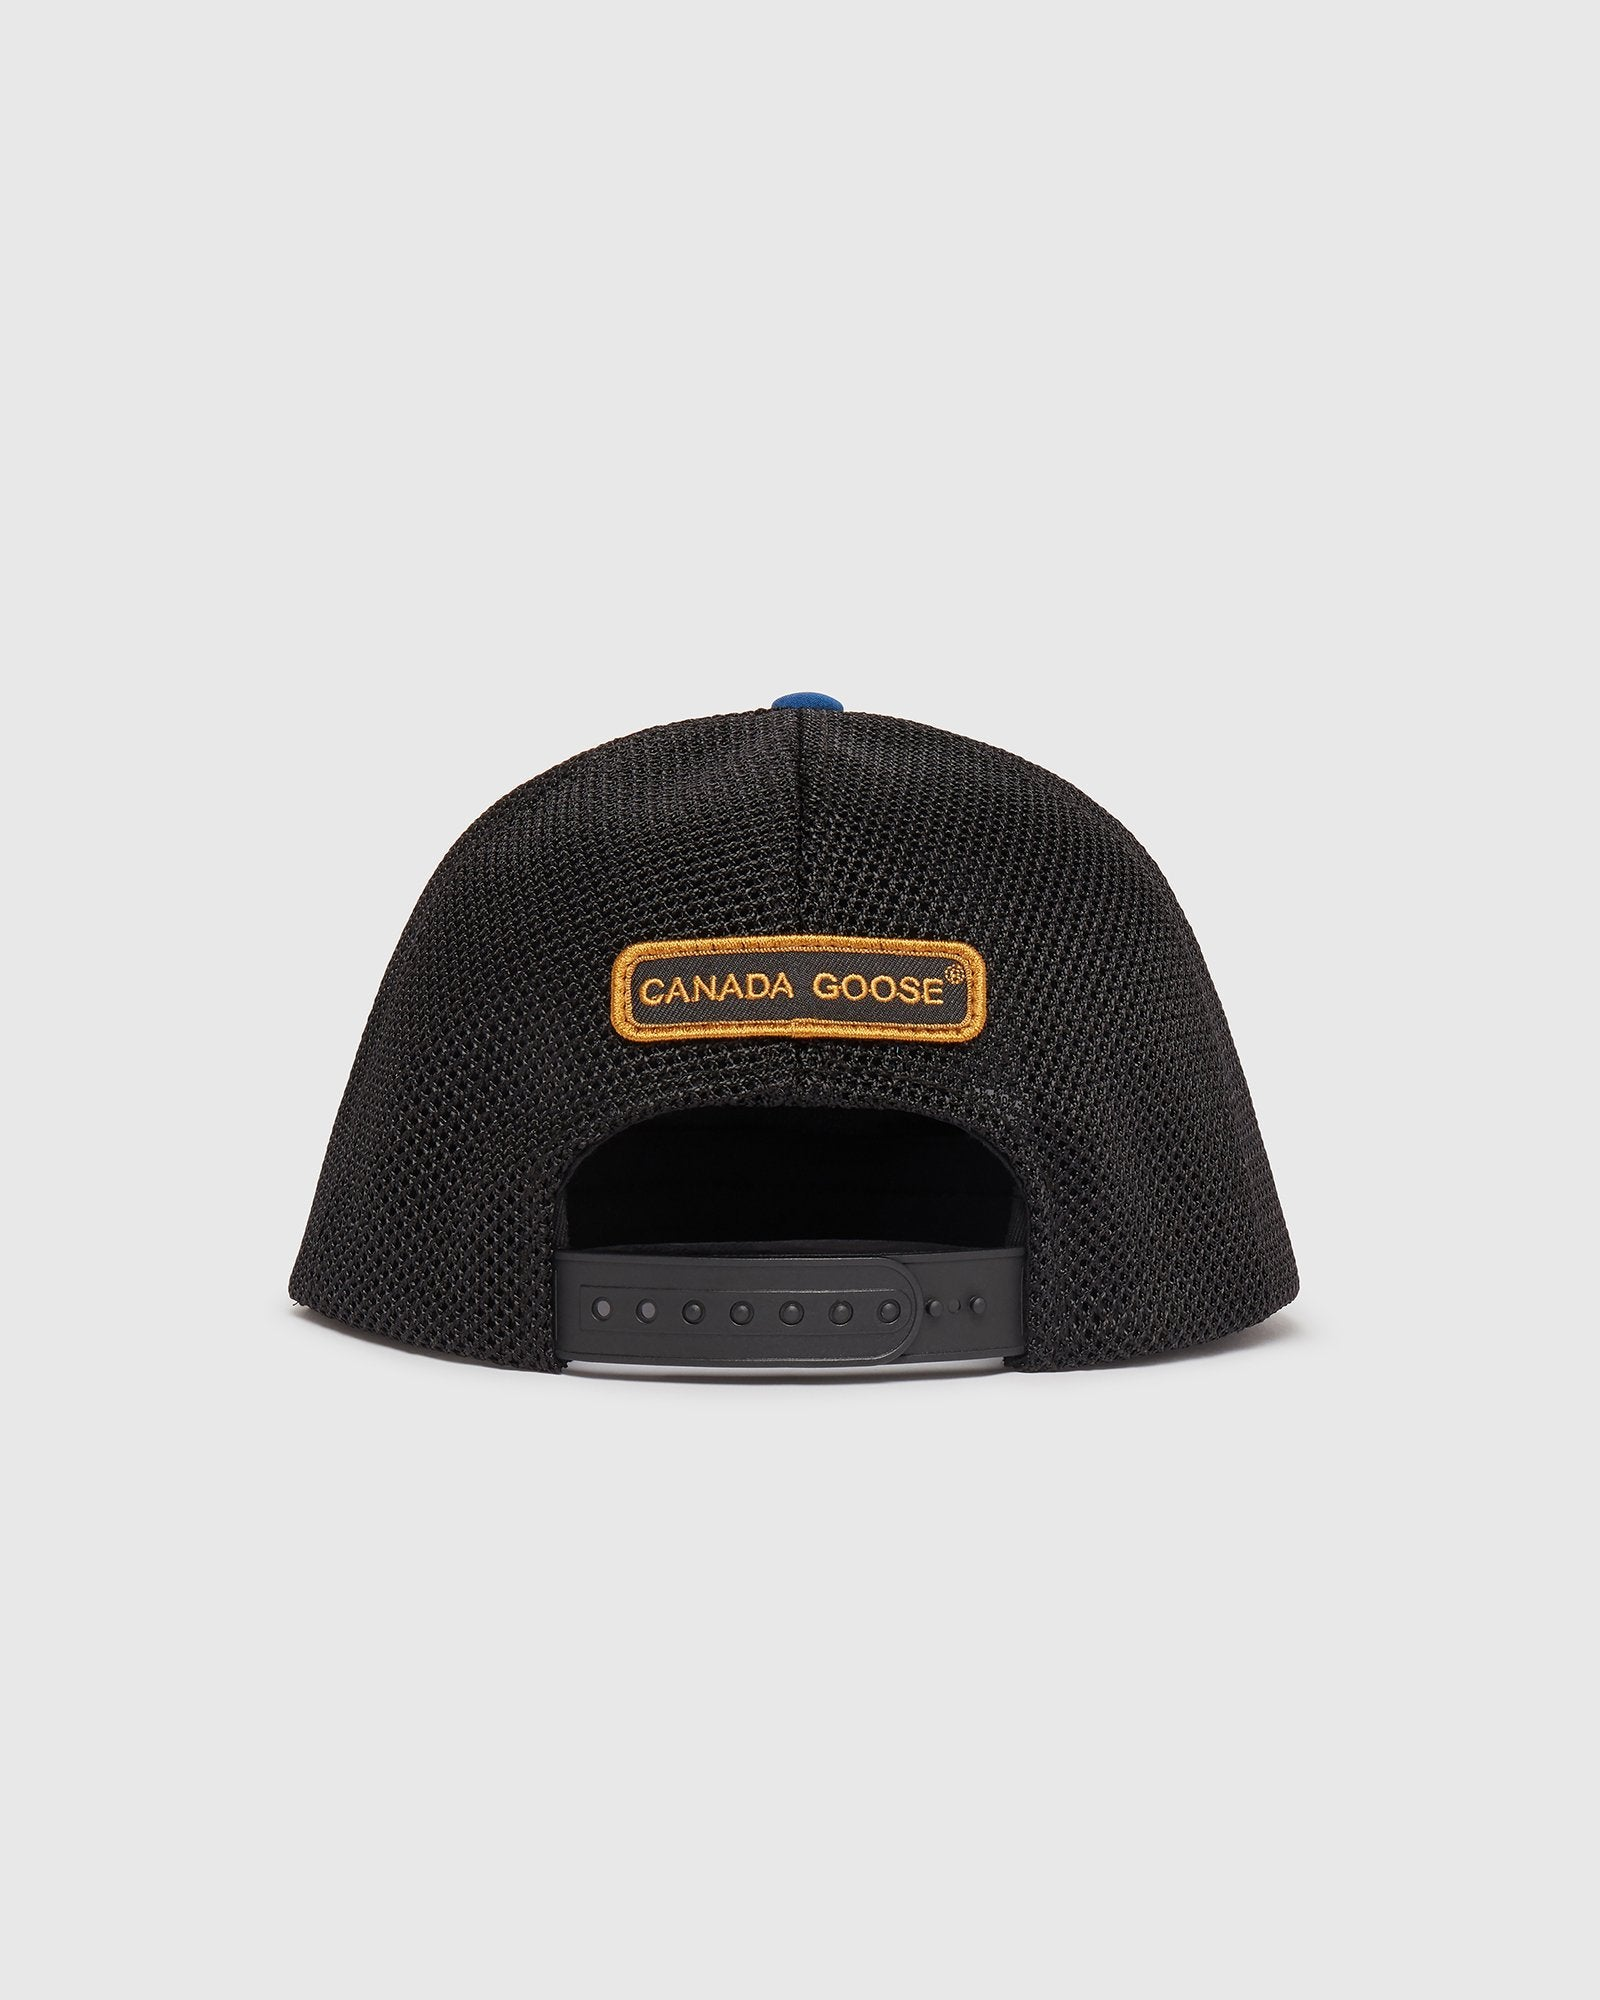 OVO X CANADA GOOSE TRUCKER HAT - ROYAL BLUE IMAGE #3